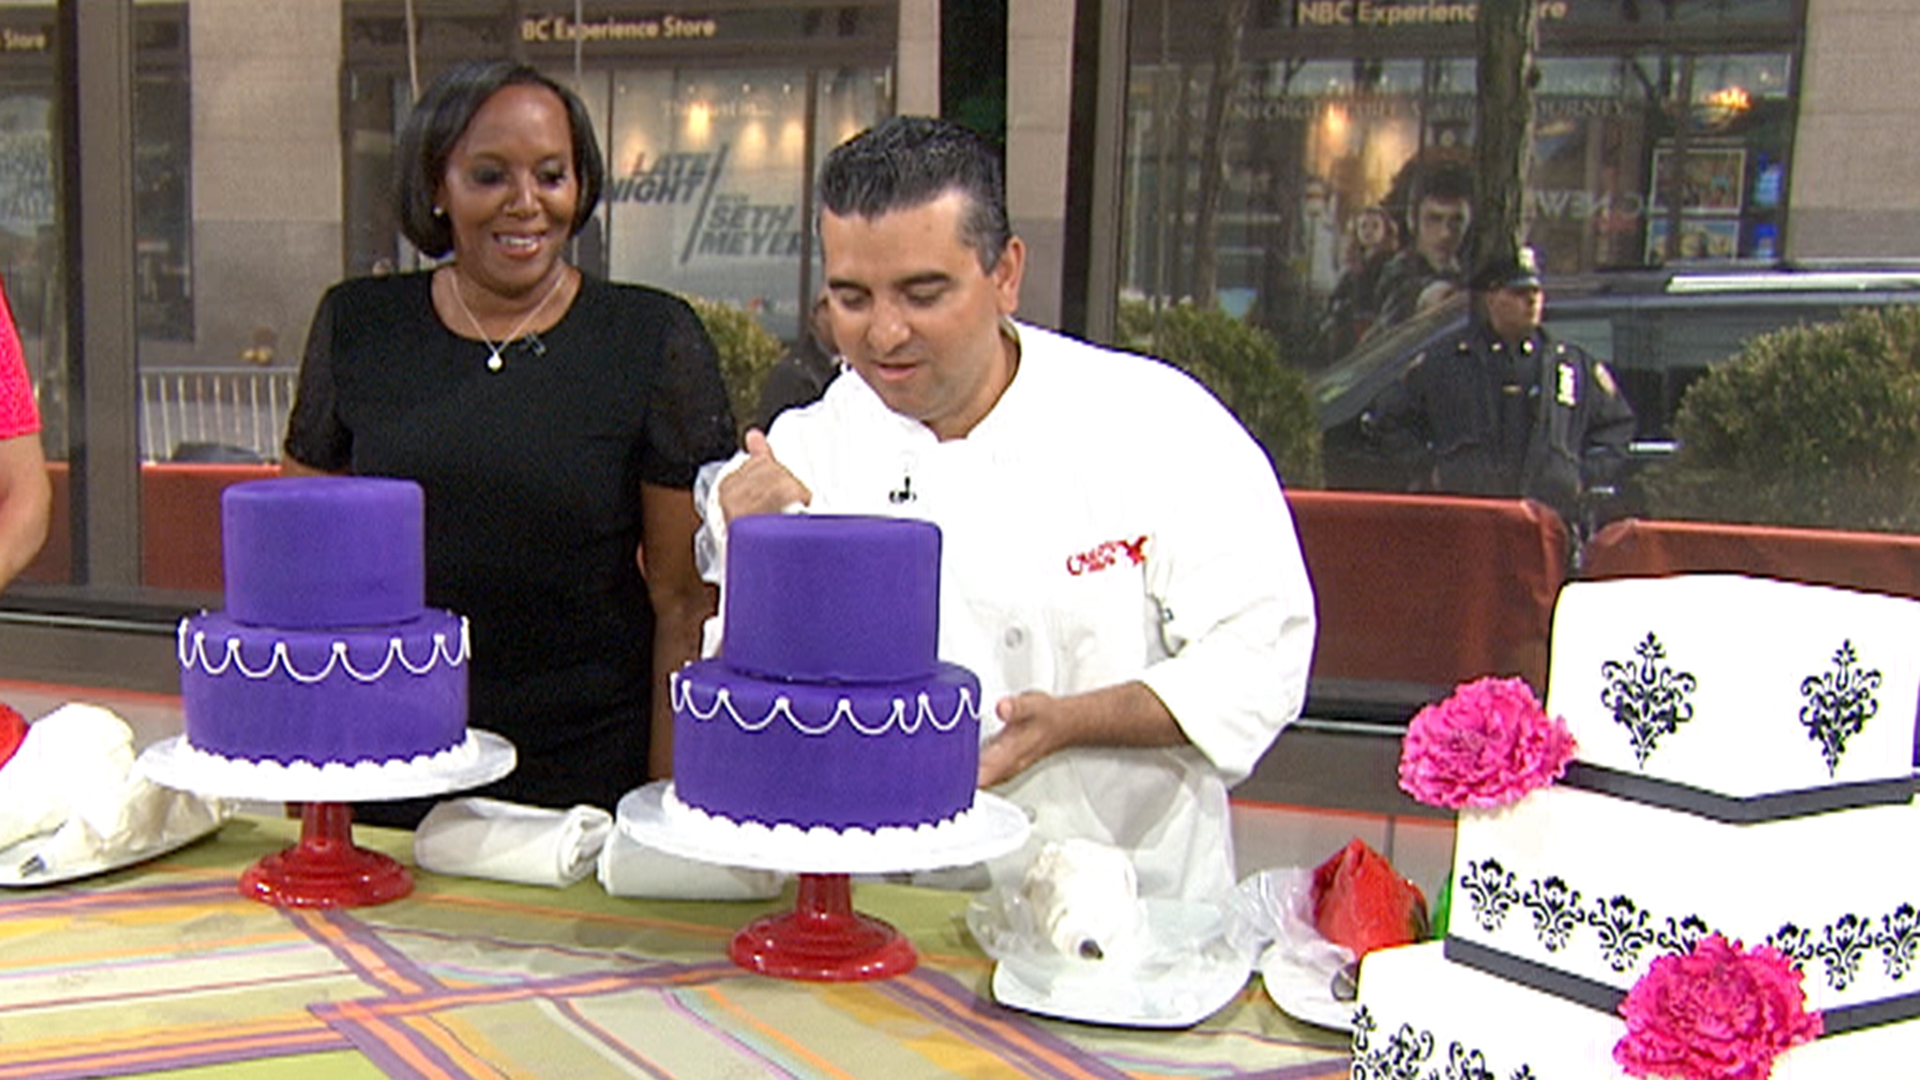 Cake Boss Buddy Valastro Hasnt Been Back To His Bakery Since His Mom Died recommendations